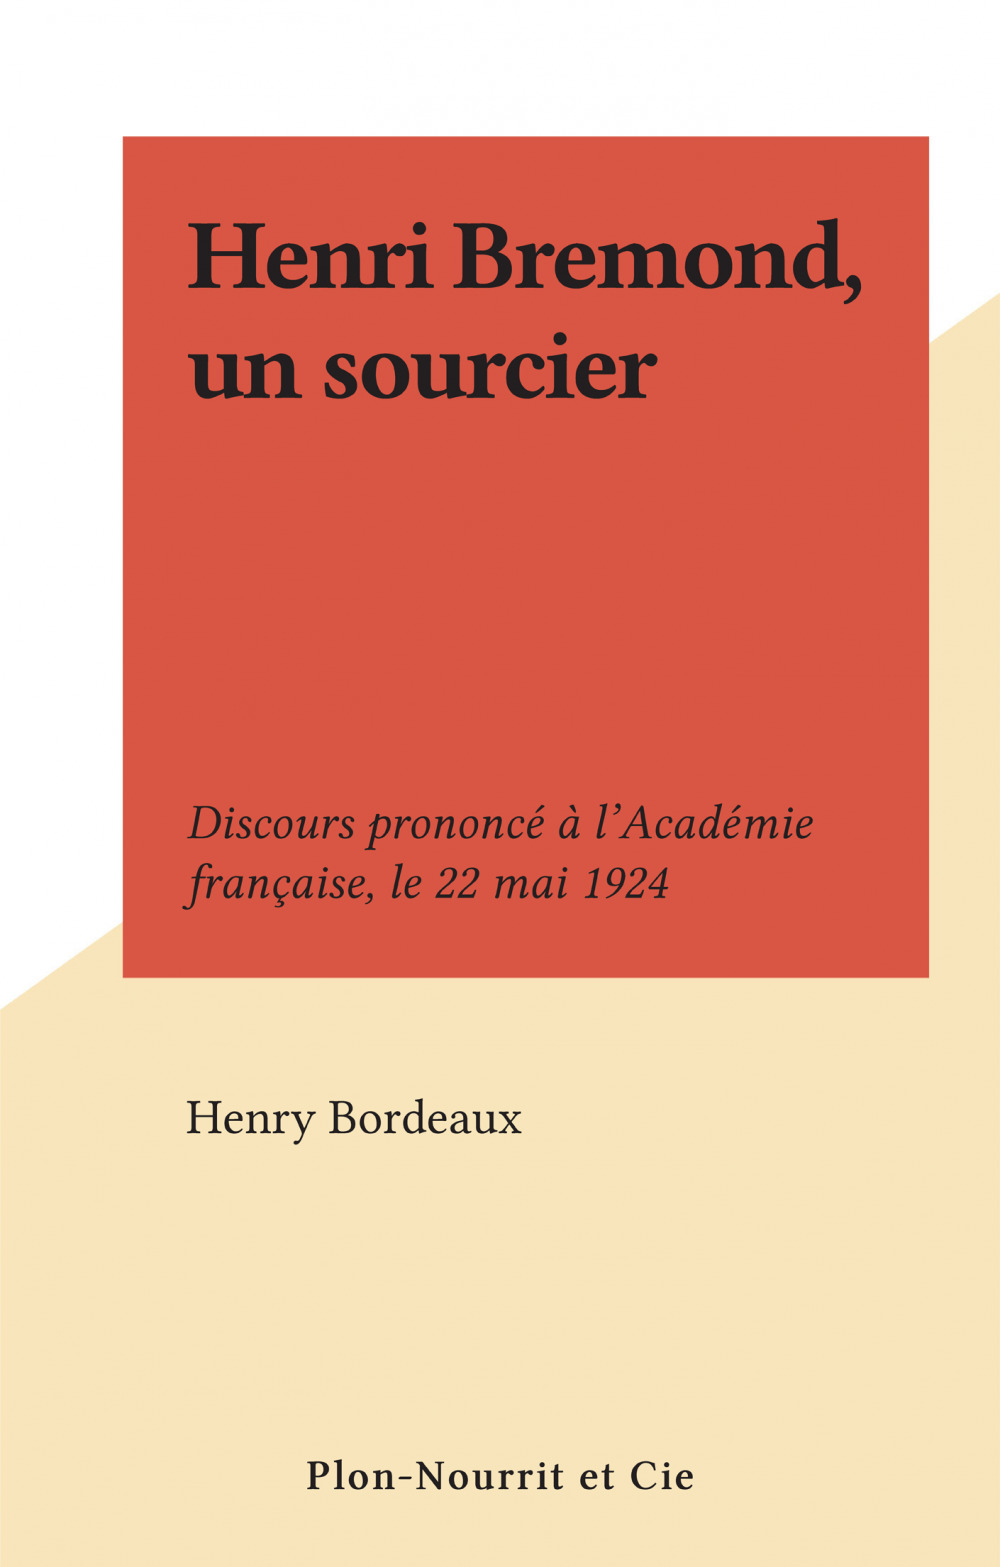 Henri Bremond, un sourcier